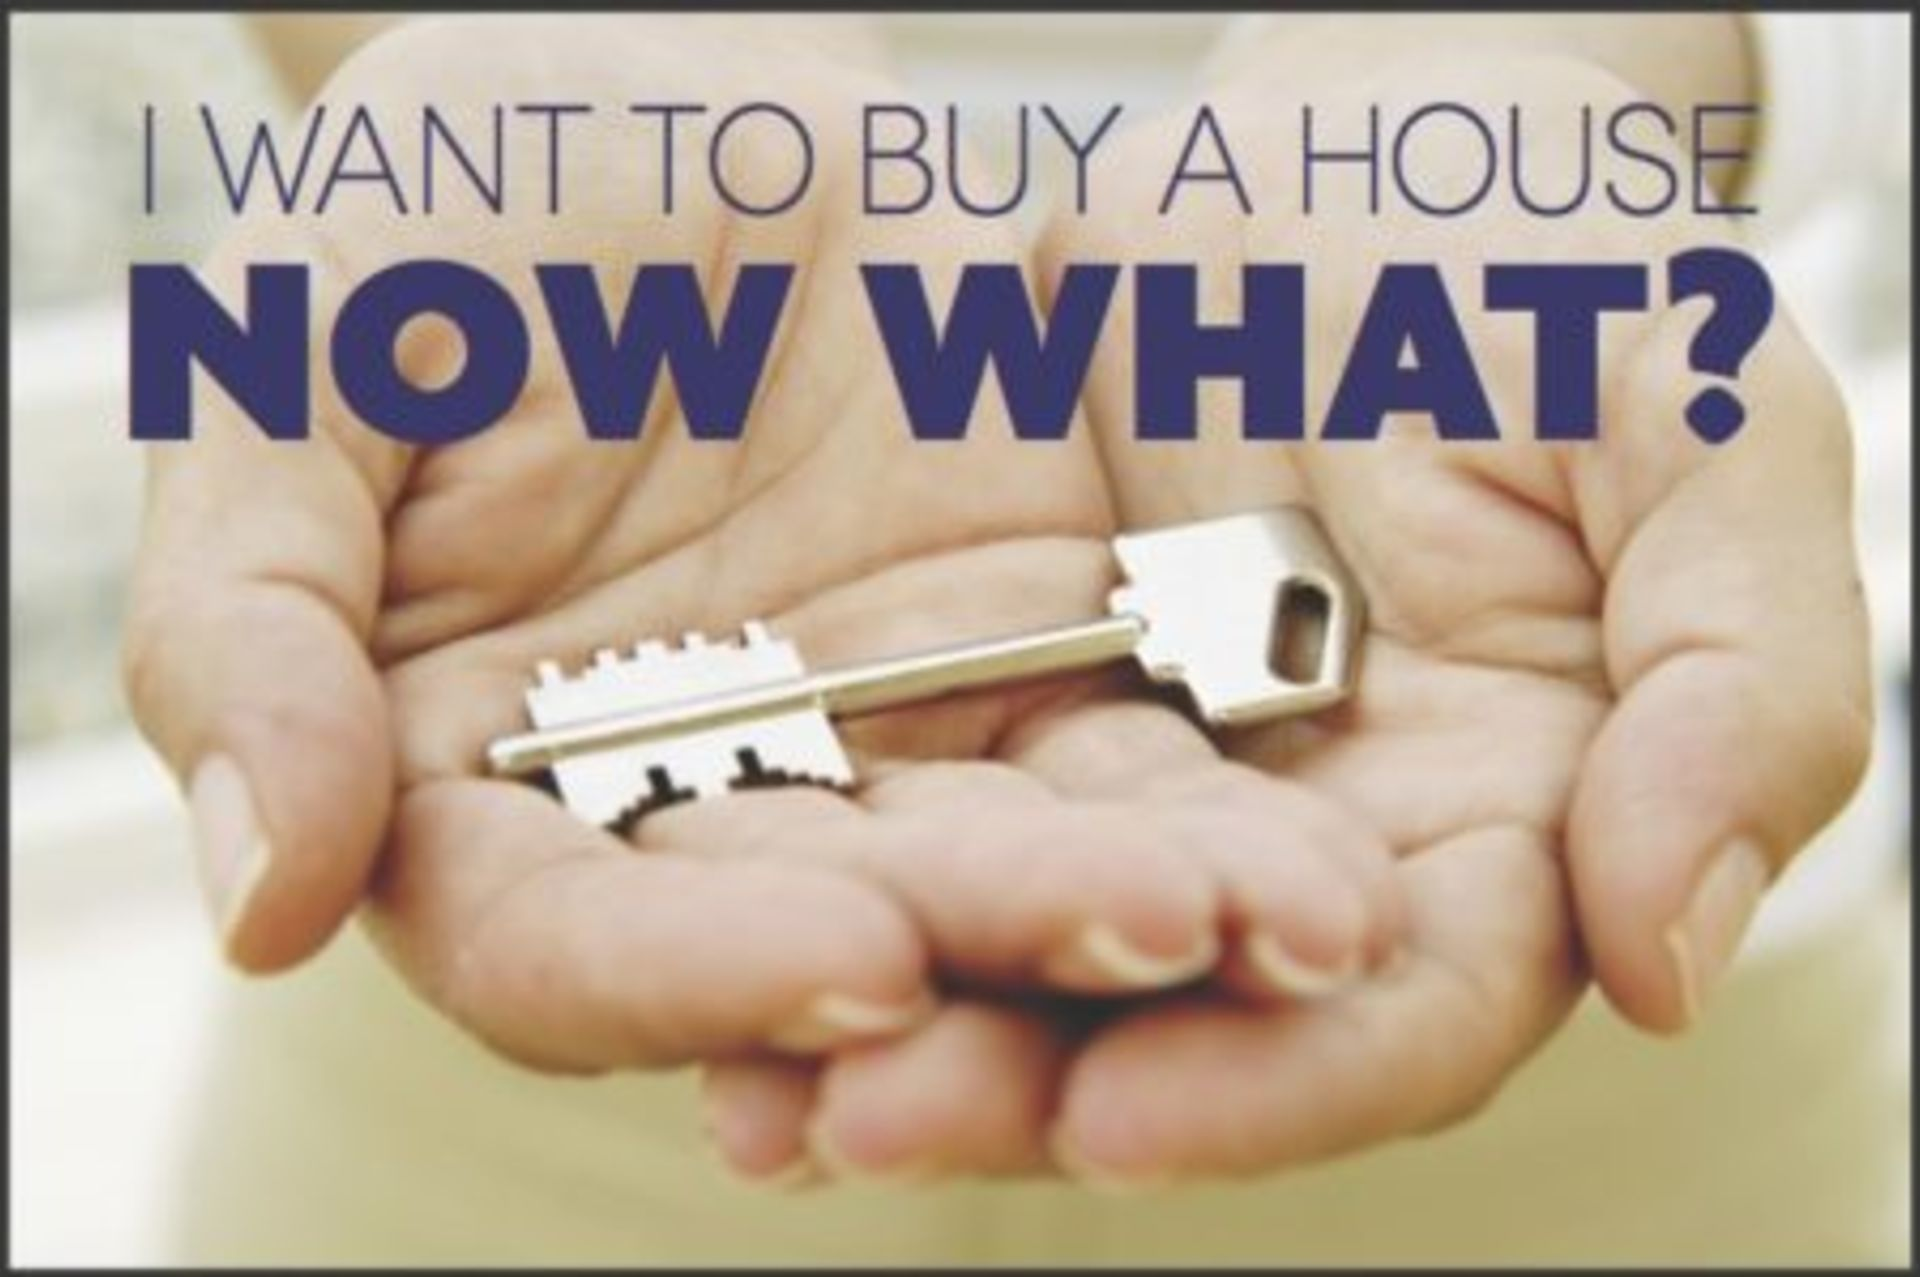 I'm buying my FIRST home! Now what?